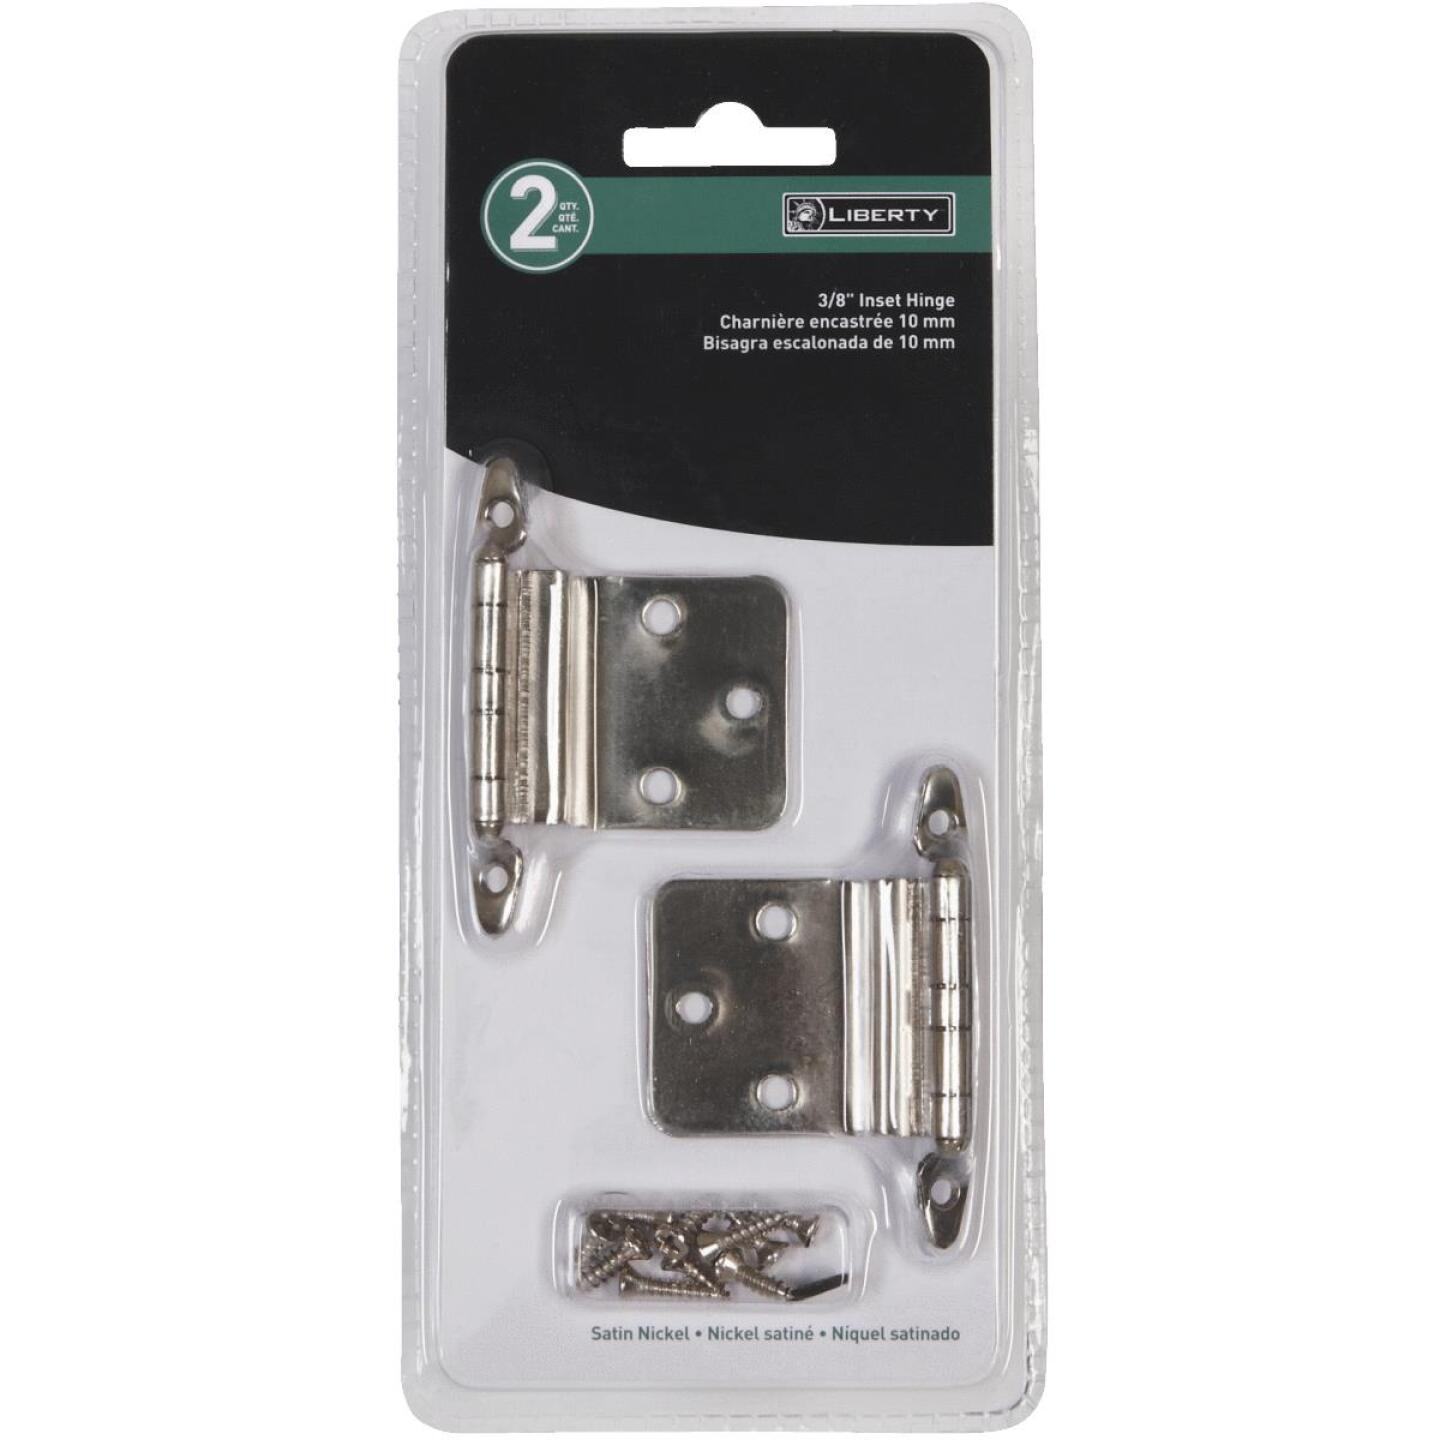 Liberty Satin Nickel 3/8 In. Inset Hinge, Without Spring, (2-Pack) Image 2